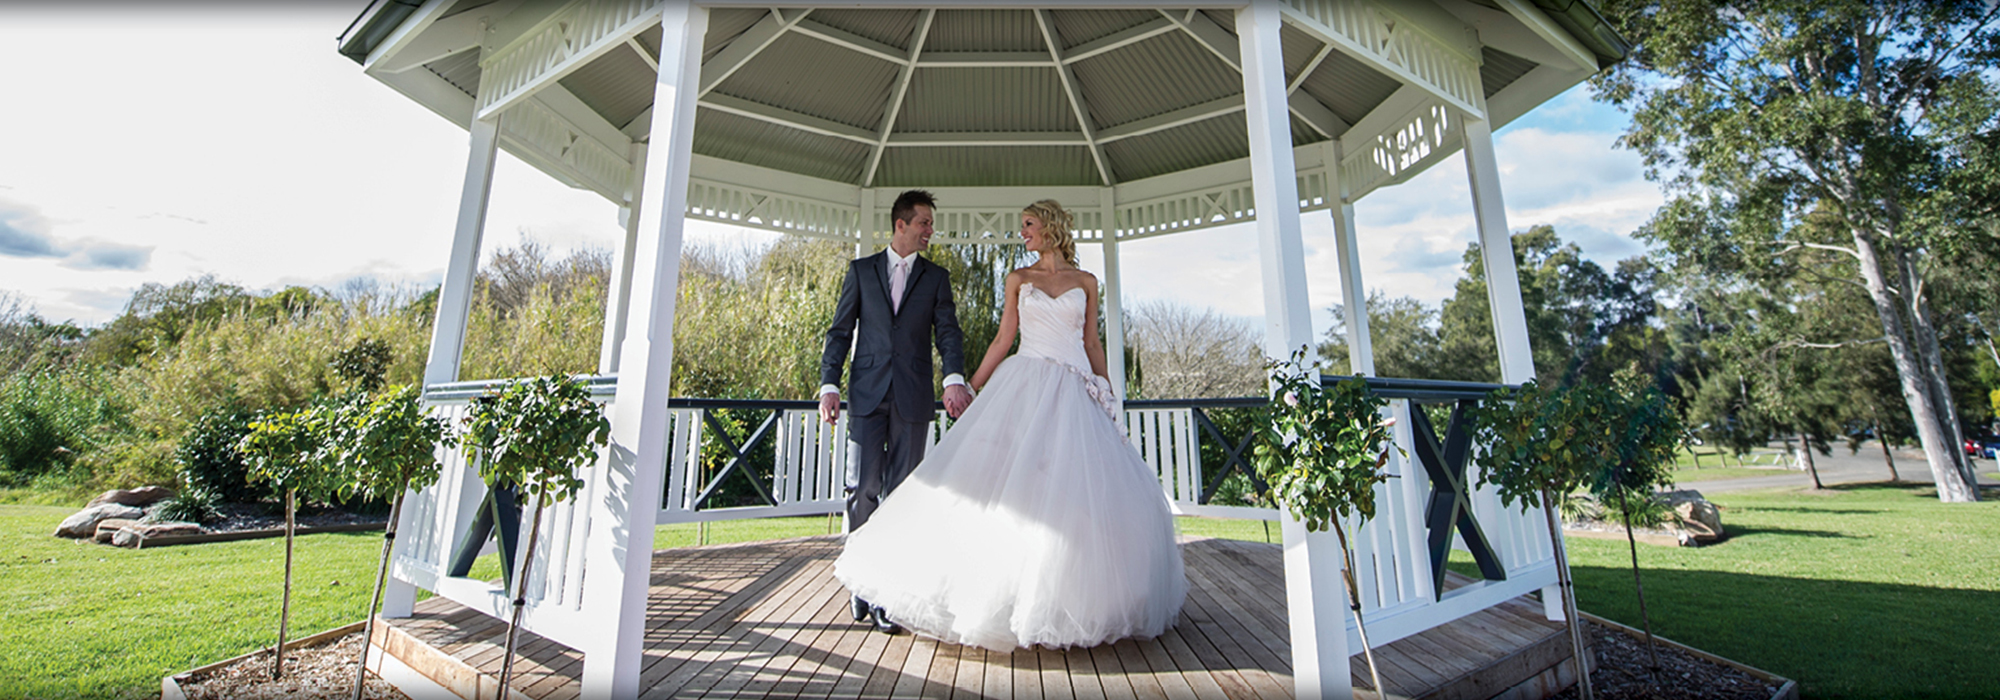 Exotic tropical garden gazebo exotic dream weddings about this wedding site junglespirit Images